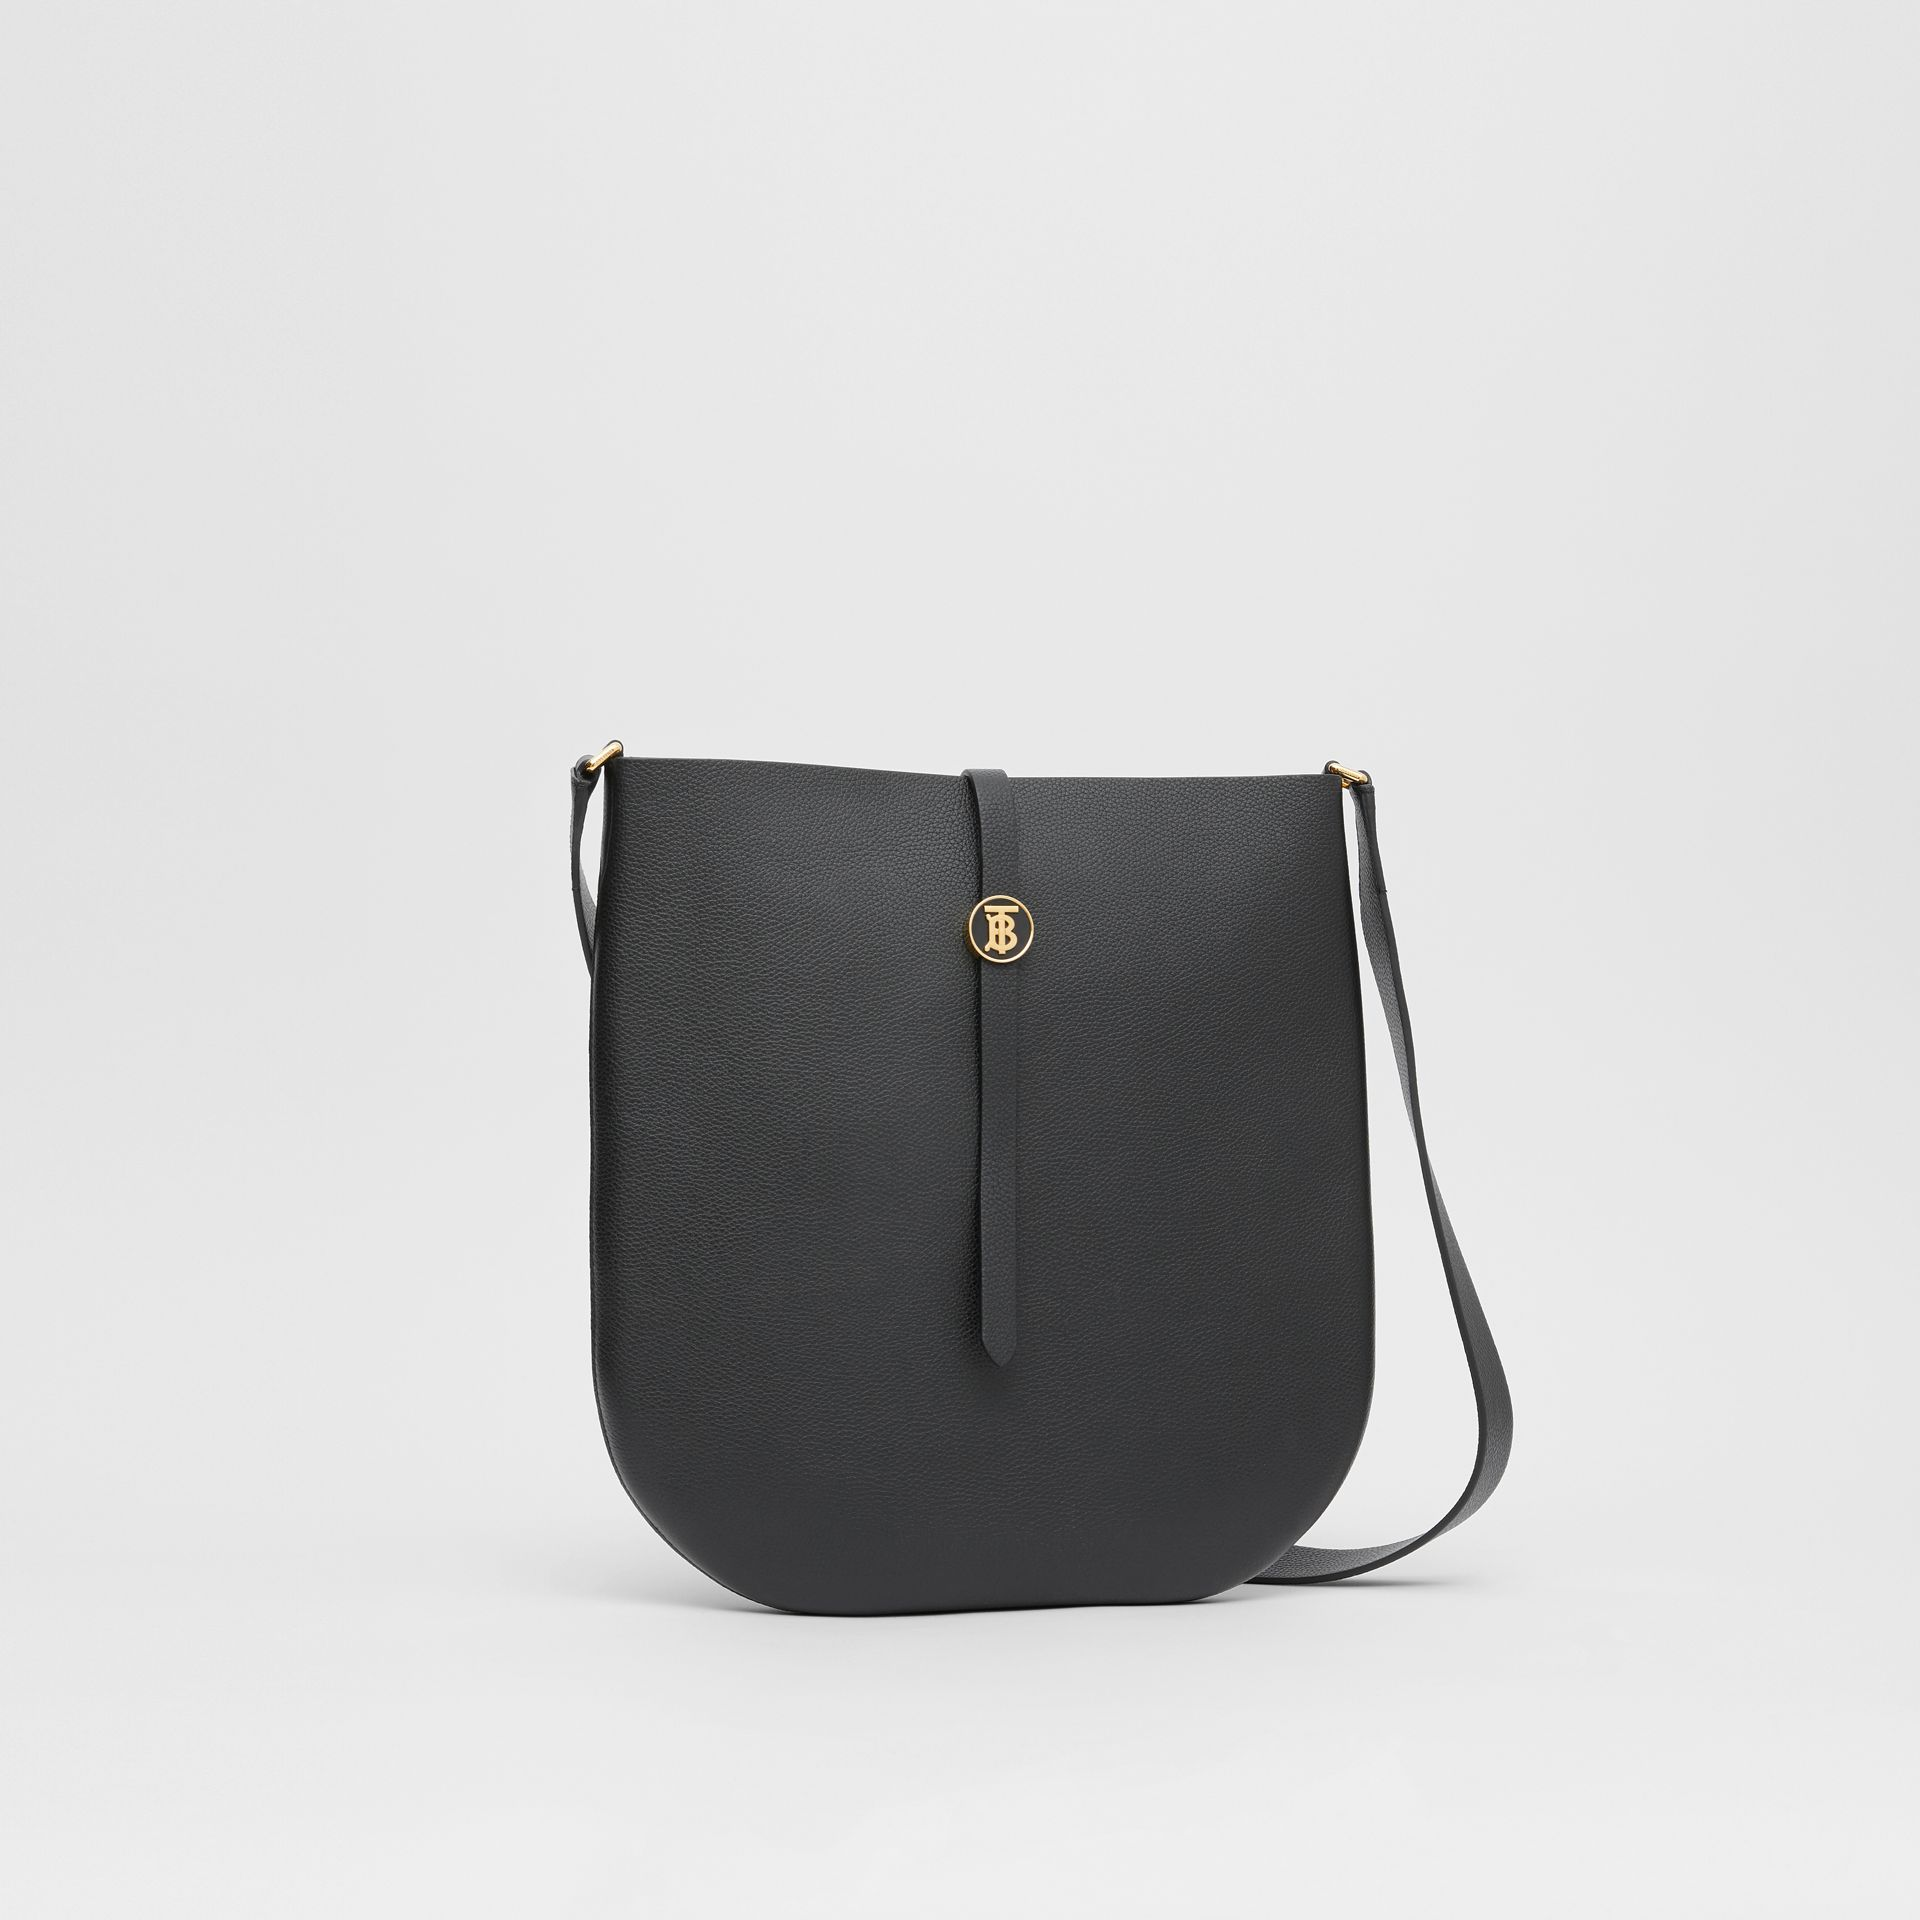 Grainy Leather Anne Bag in Black - Women | Burberry United States - gallery image 6